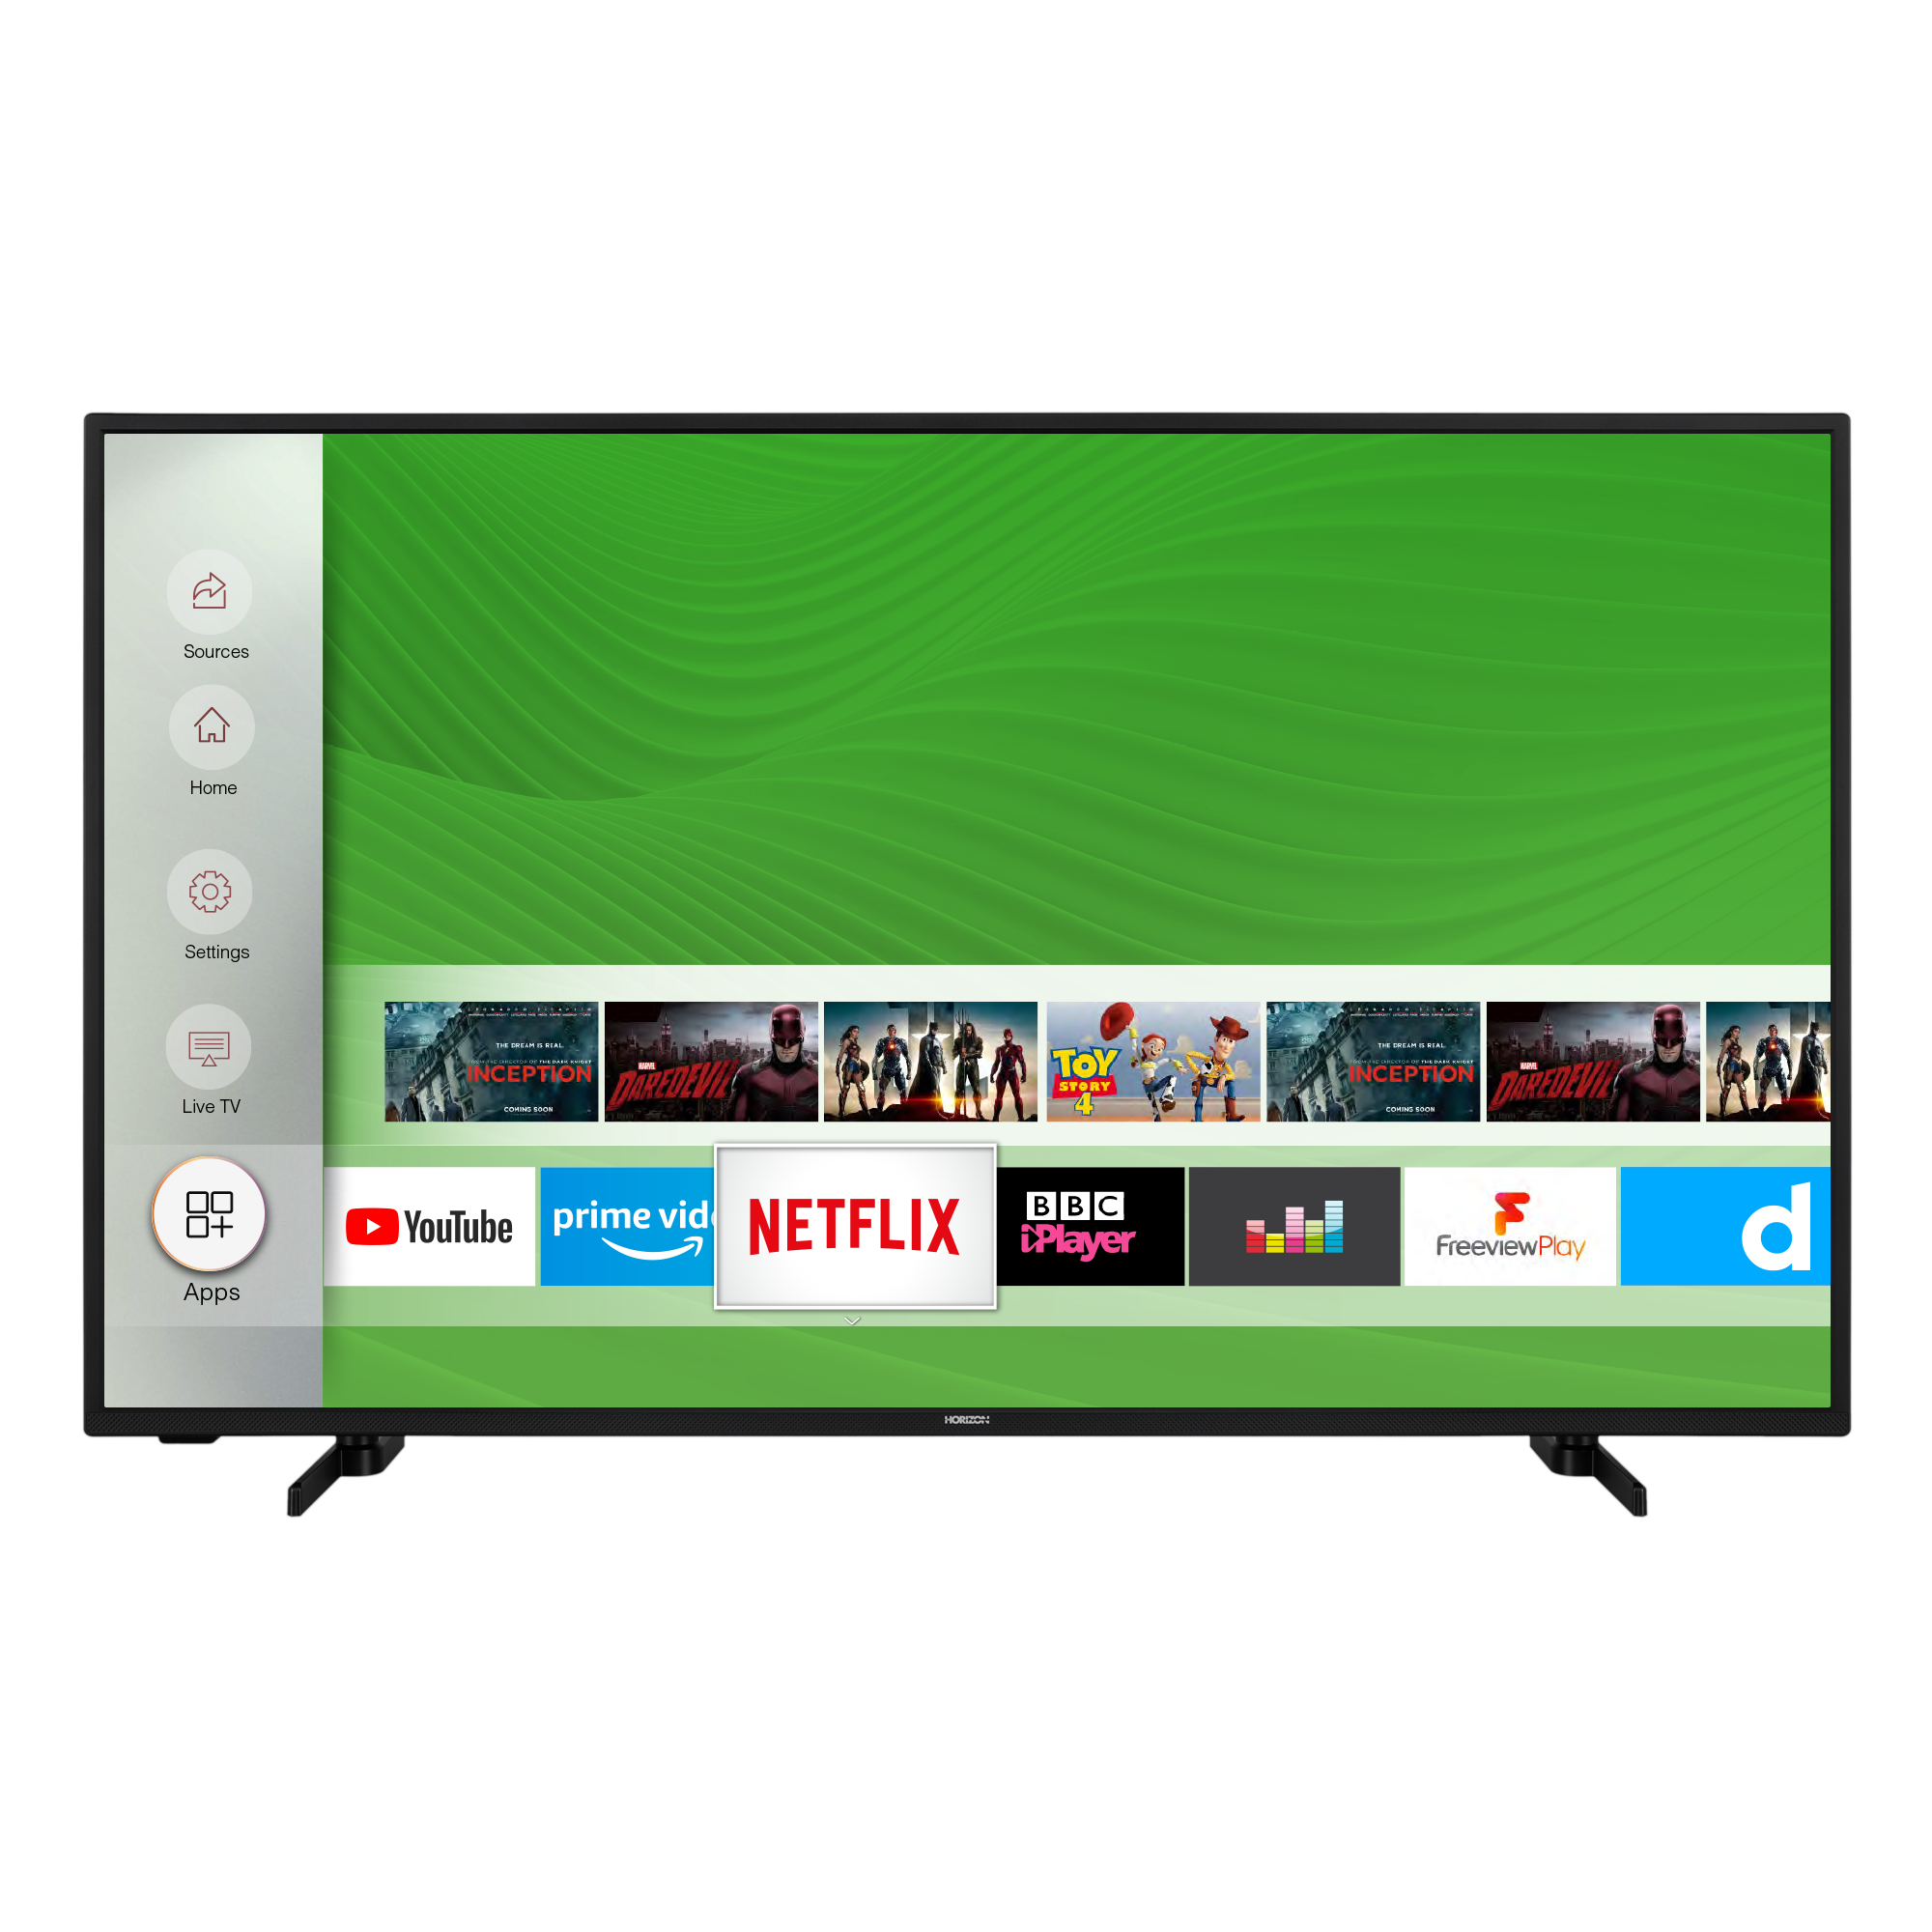 Televizor Horizon 50HL7530U, 126 cm, Smart, 4K Ultra HD, LED